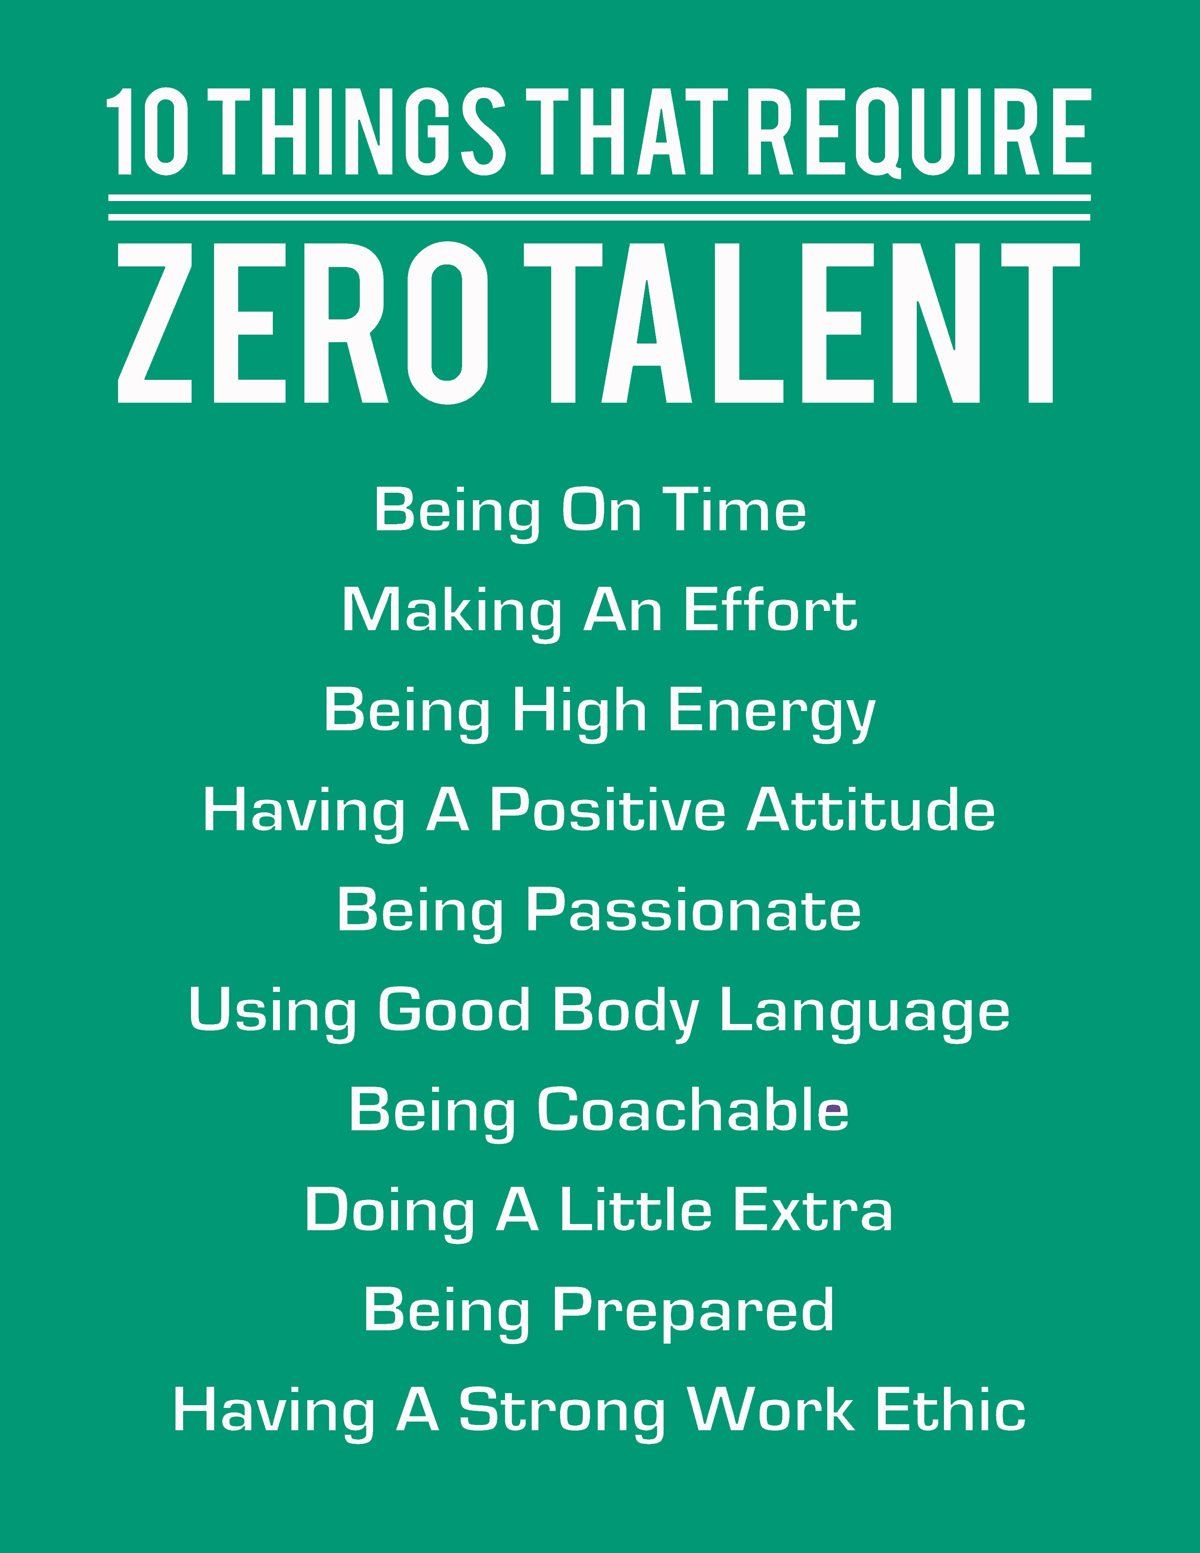 10 Things That Require Zero Talent Emerald Inspirational Etsy